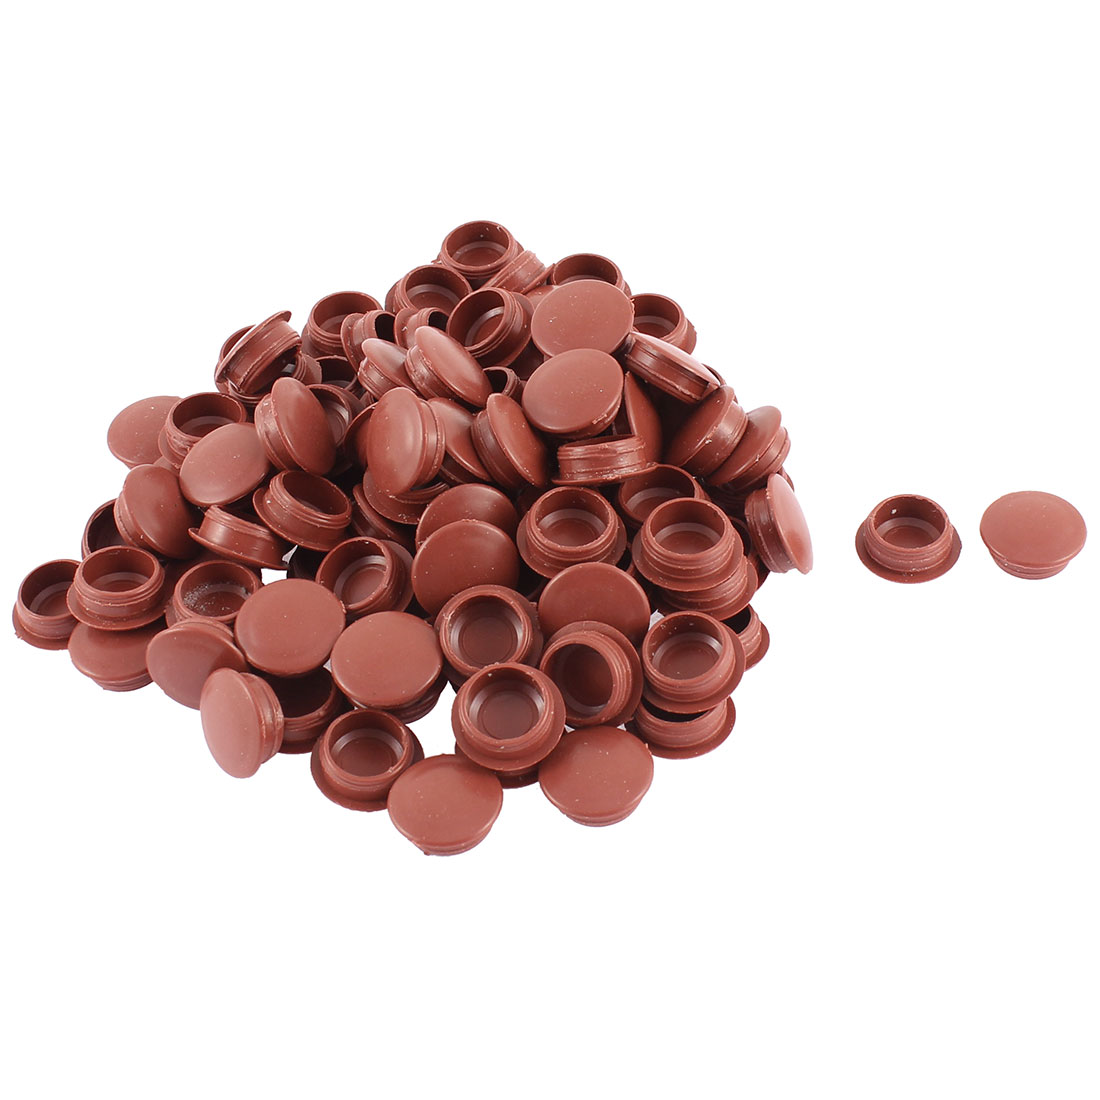 Home Plastic Furniture Chair Legs Hole Covers Tube Insert Burgundy 100pcs